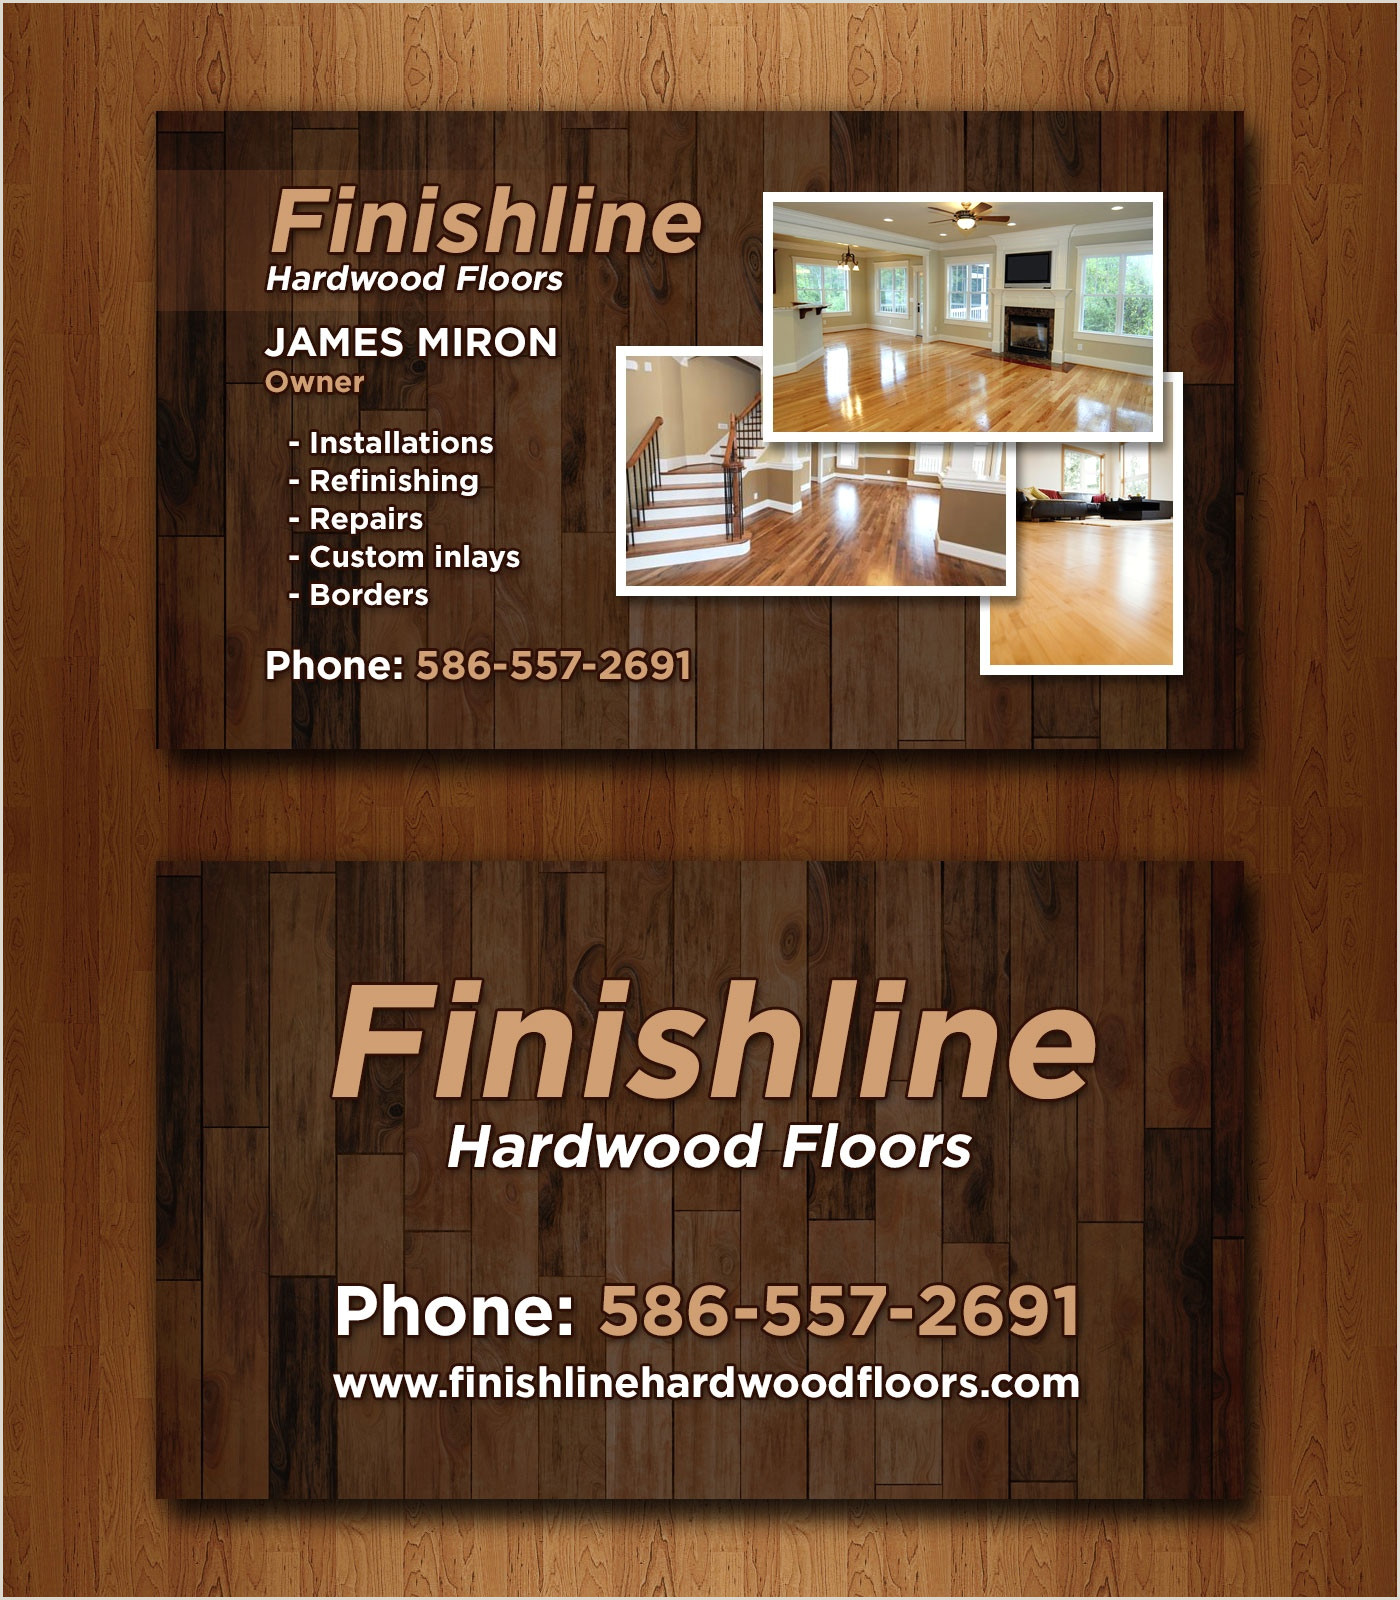 This Designer Designed These Unique Business Cards With Photos 14 Popular Hardwood Flooring Business Card Template